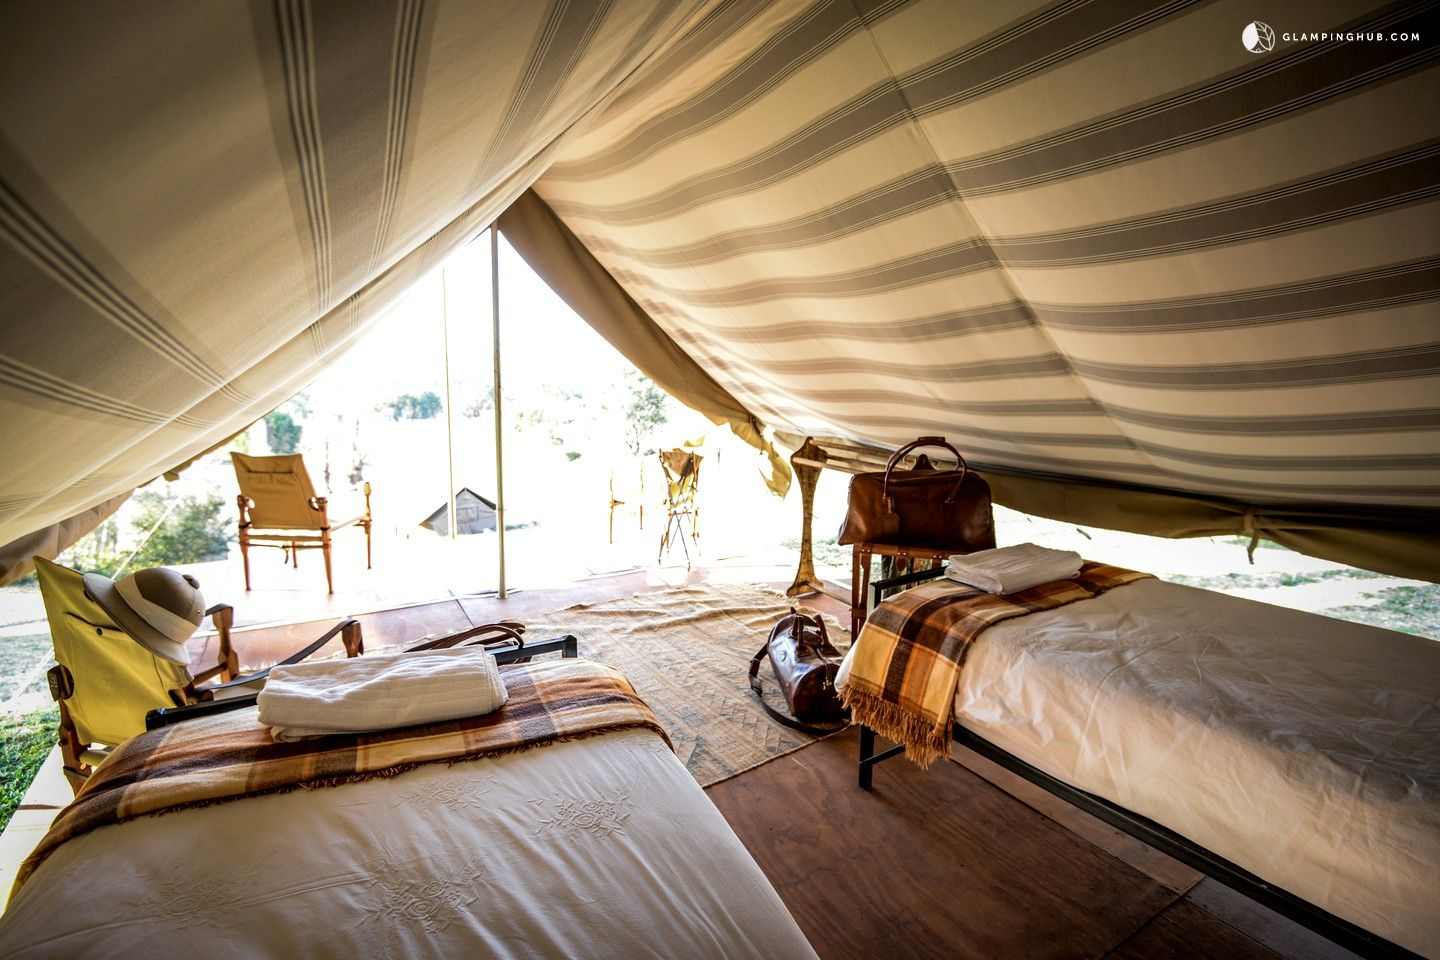 Glamping Tent Rentals For Groups Near Golden Gate